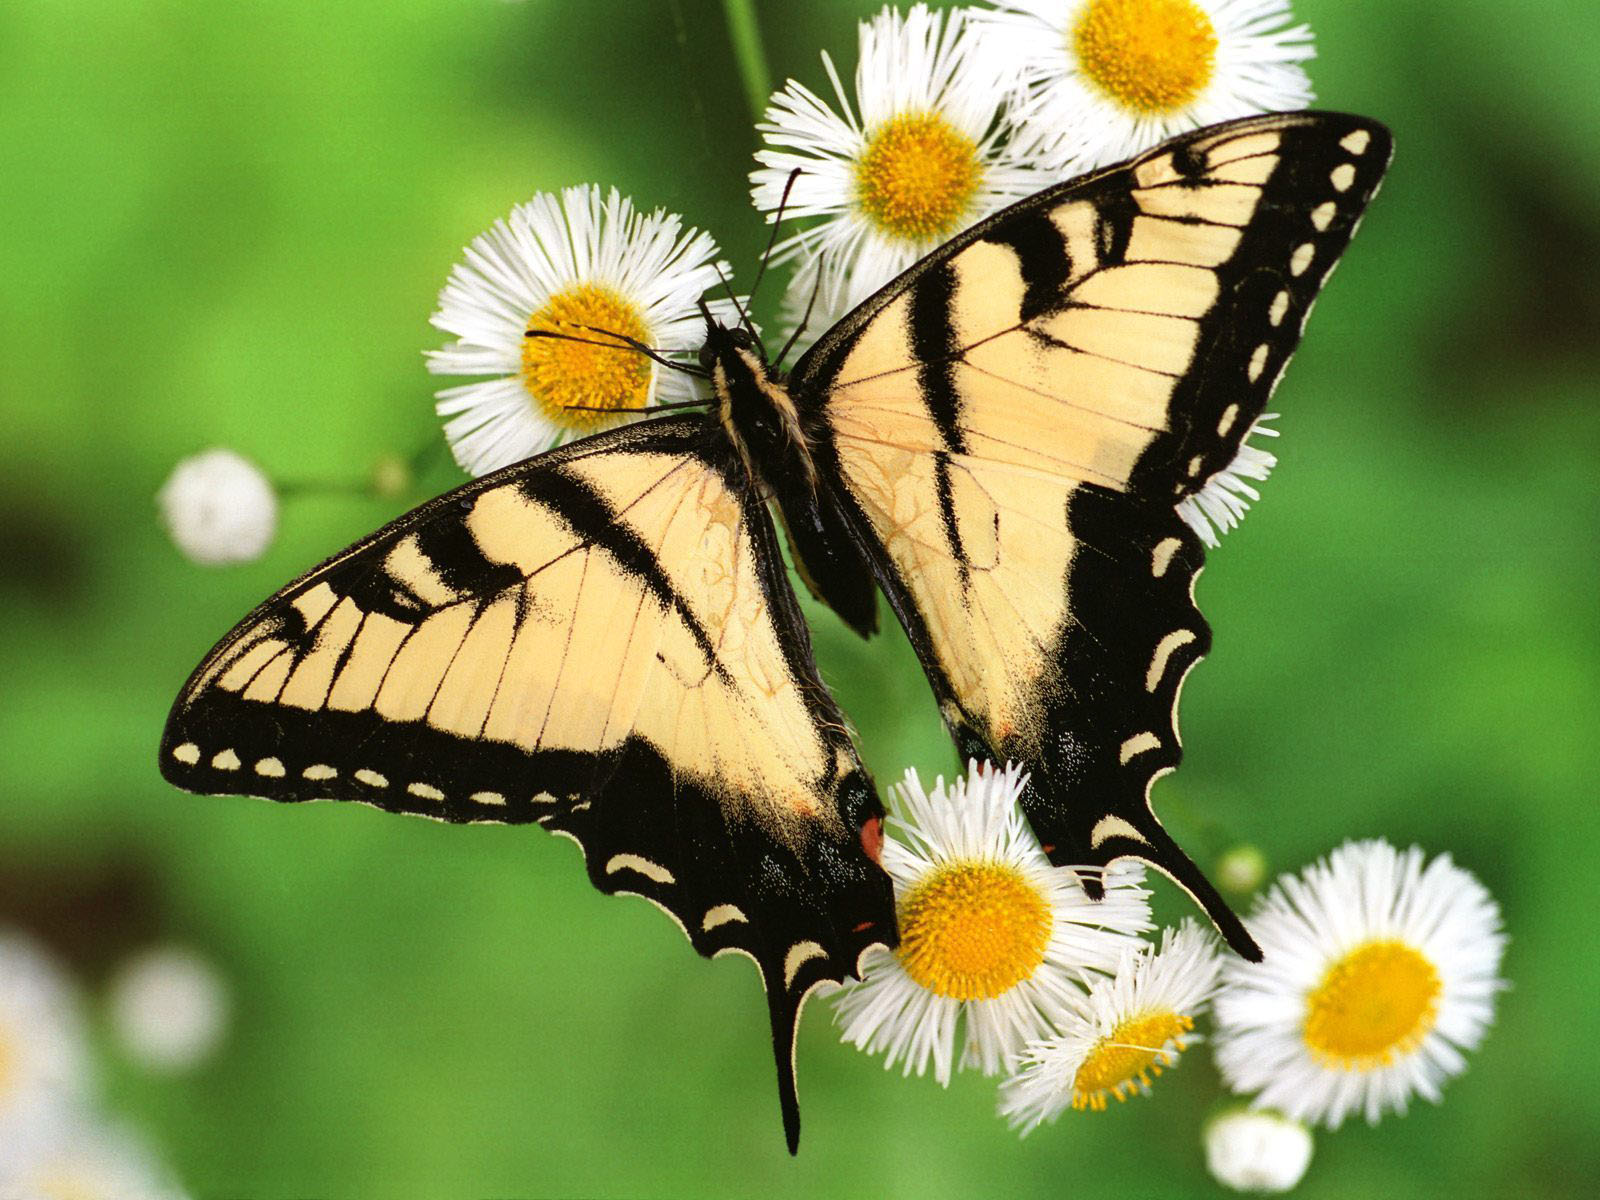 yellow black colored butterfly taking honey from flowers wallpaper o